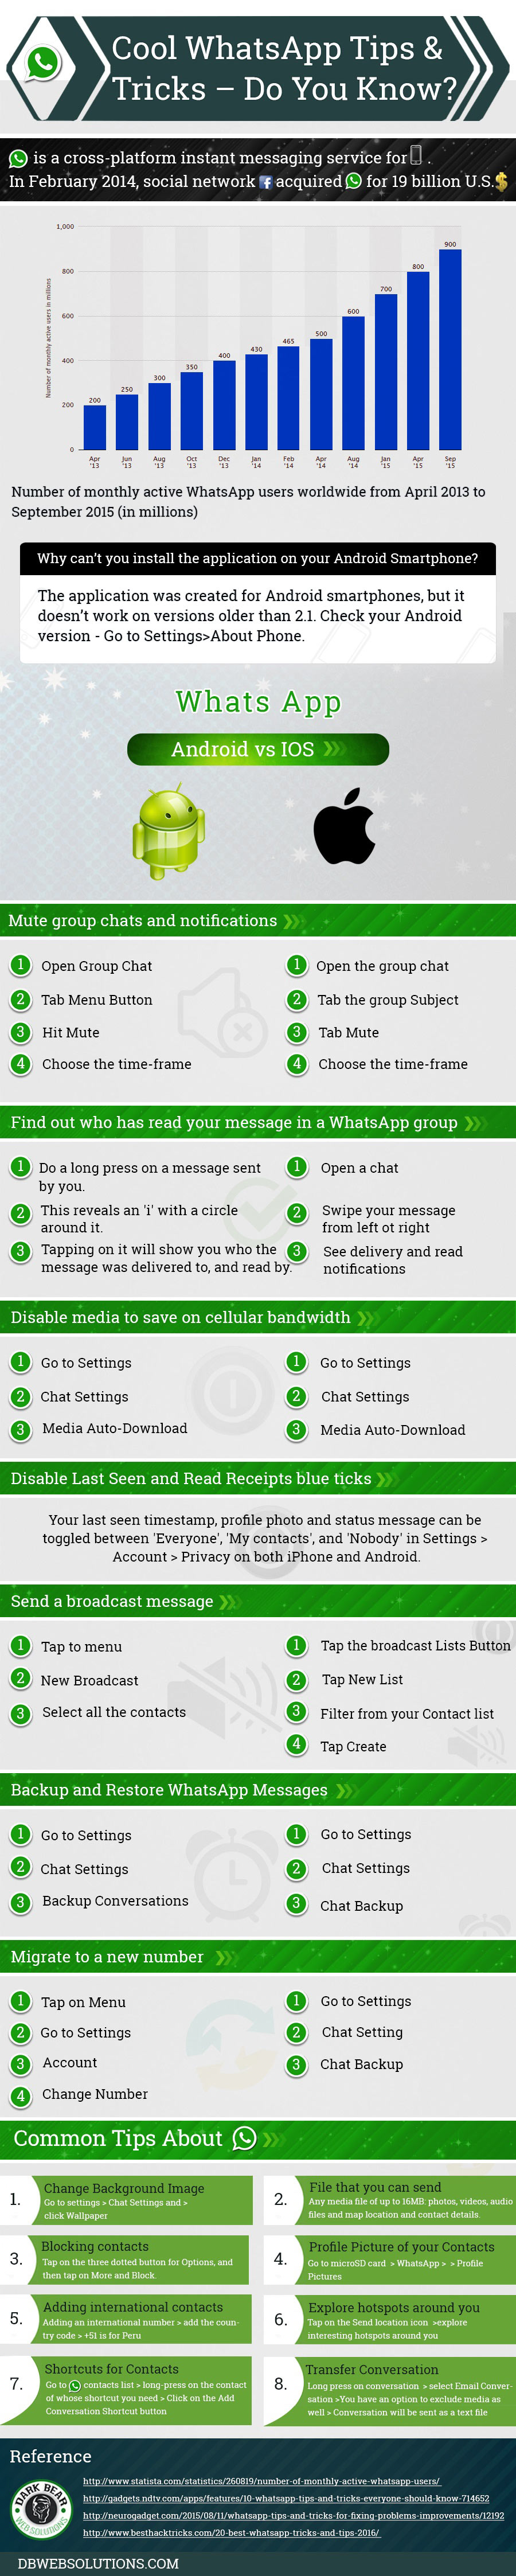 Cool WhatsApp Tips and Tricks - Summary - Infographic